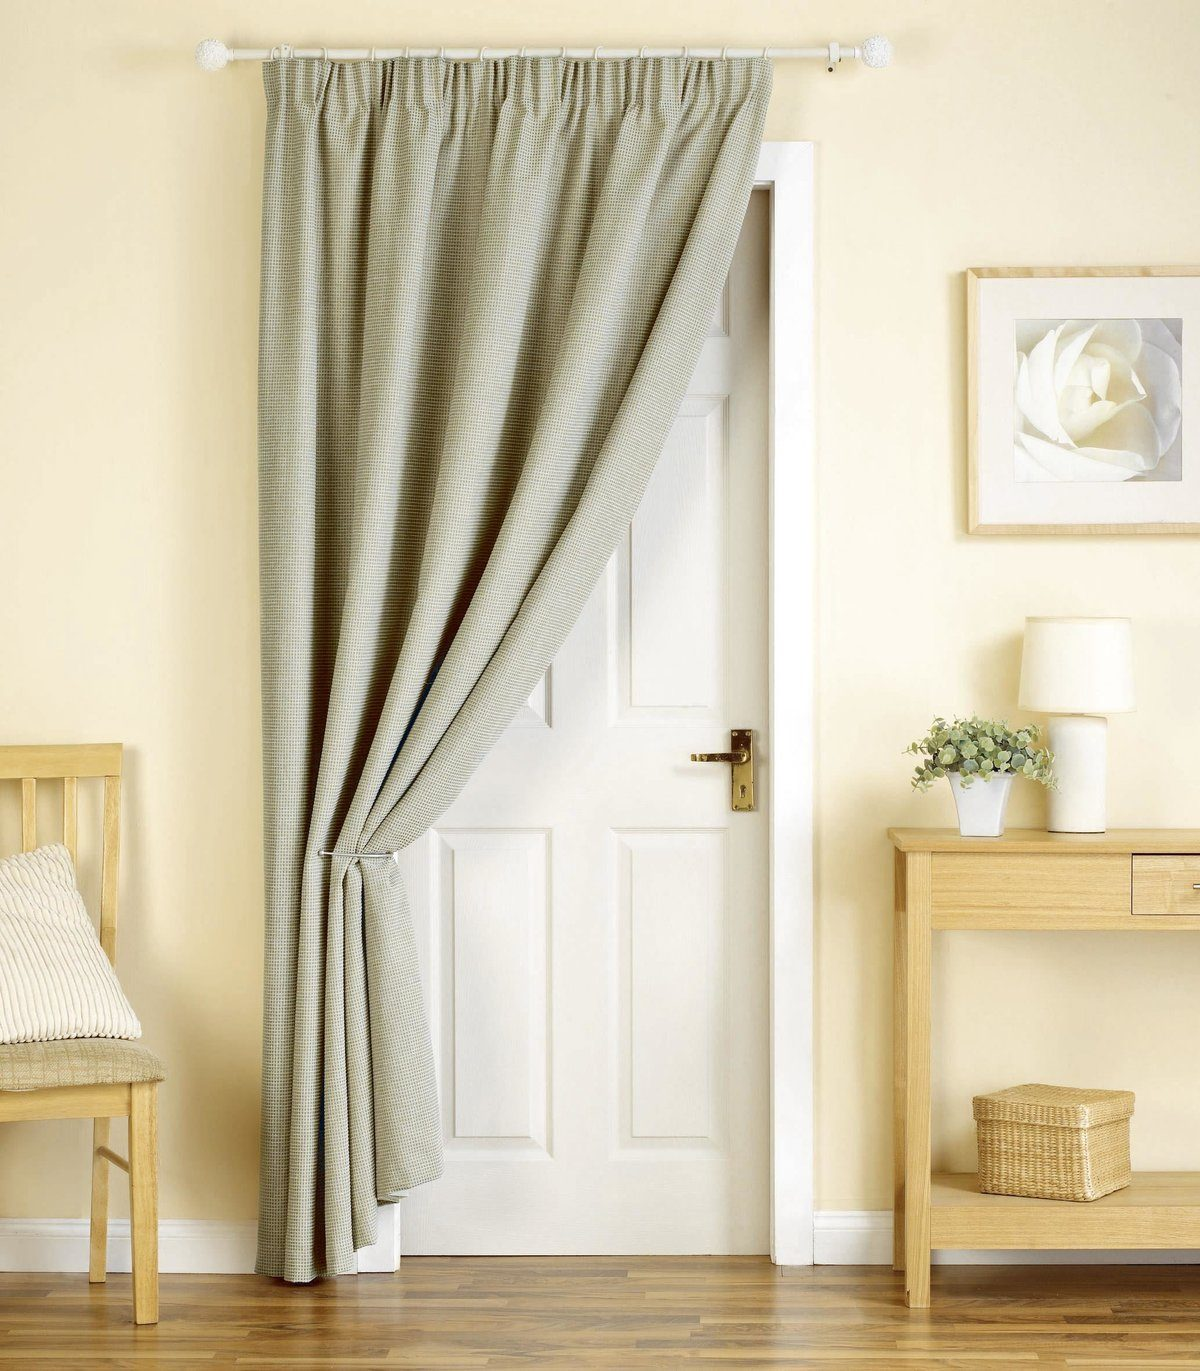 Interior Curtains: Stylish Zoning and Decoration Element. The olive cloth in addition to traditional interior door of Scandi styled room